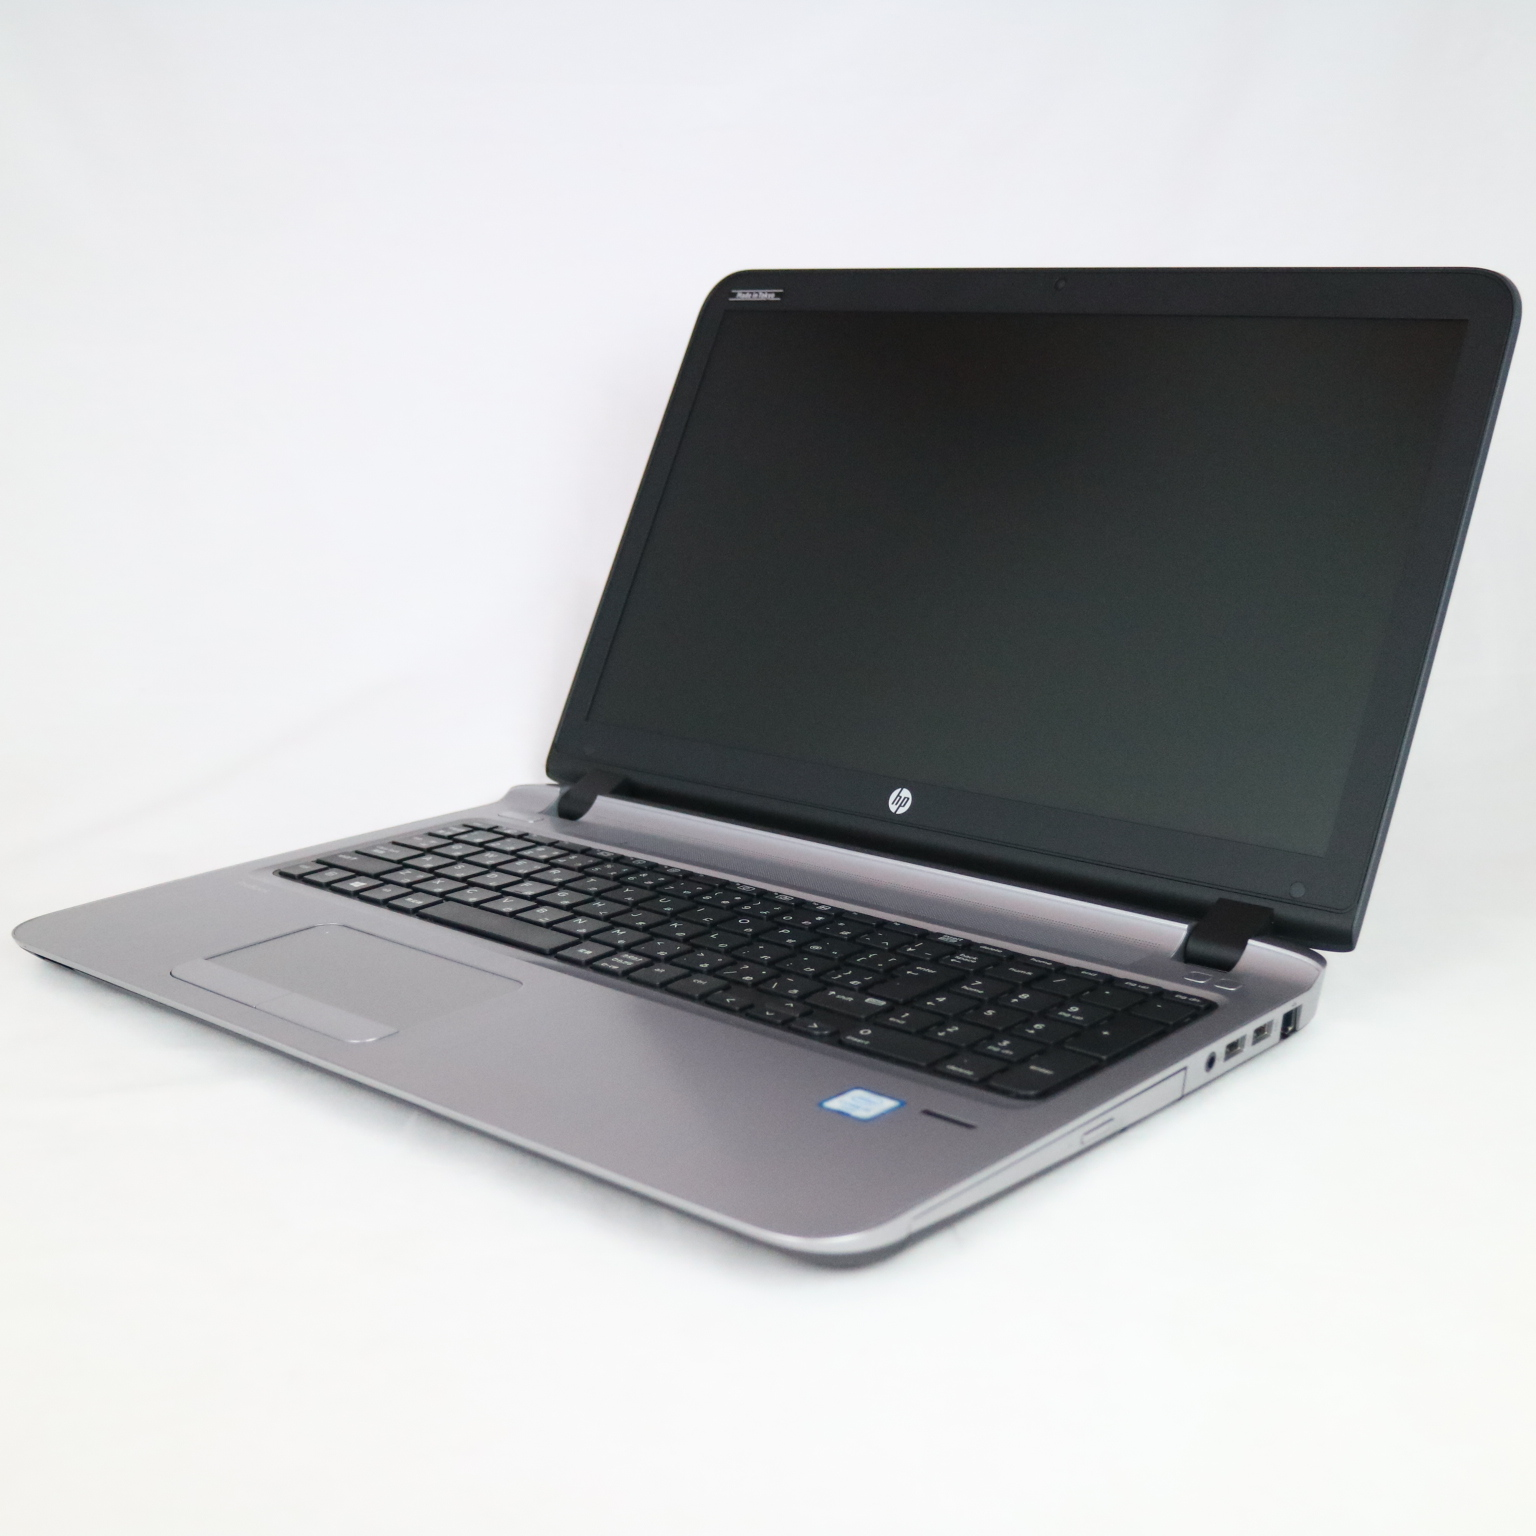 Probook 450 G3/ 15.6インチ/ Core i5-6200U/ 2.3GHz/ 8GB/ HDD 500GB